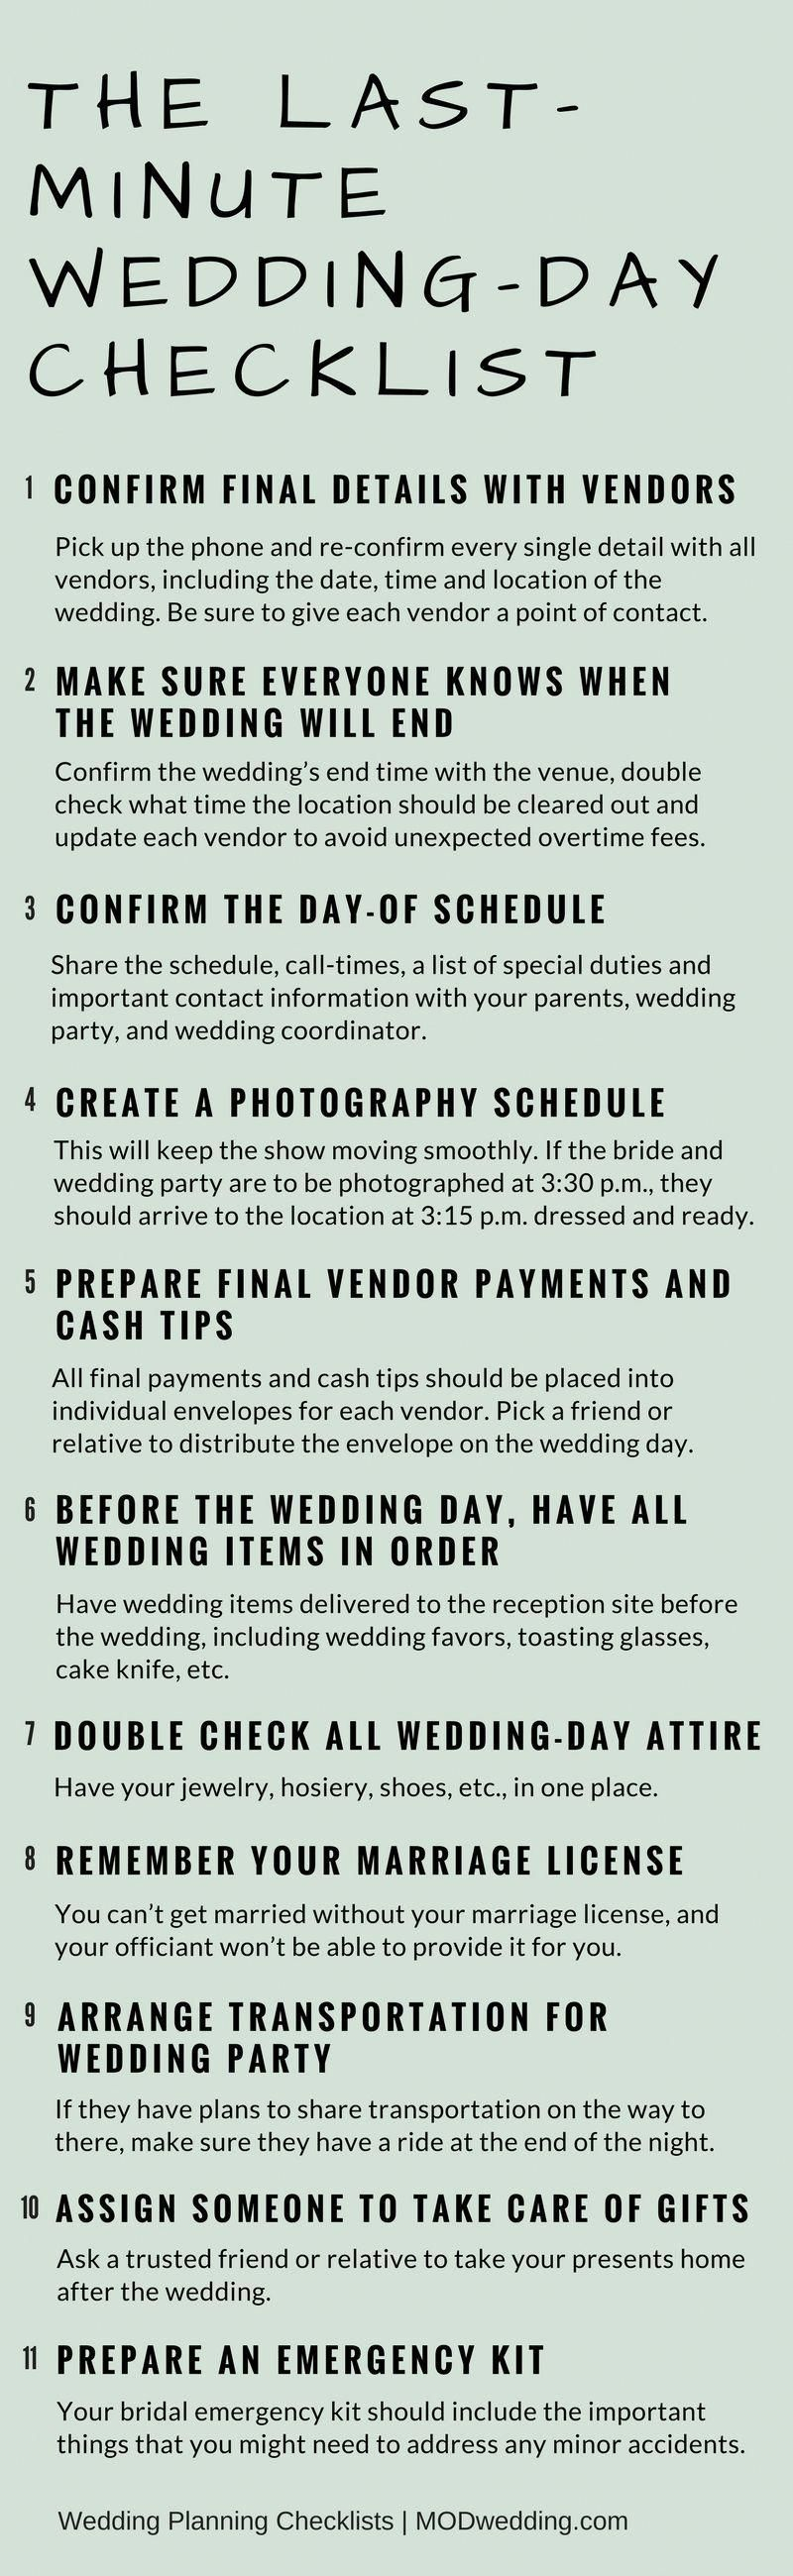 the last minute wedding day checklist visit modwedding com for more